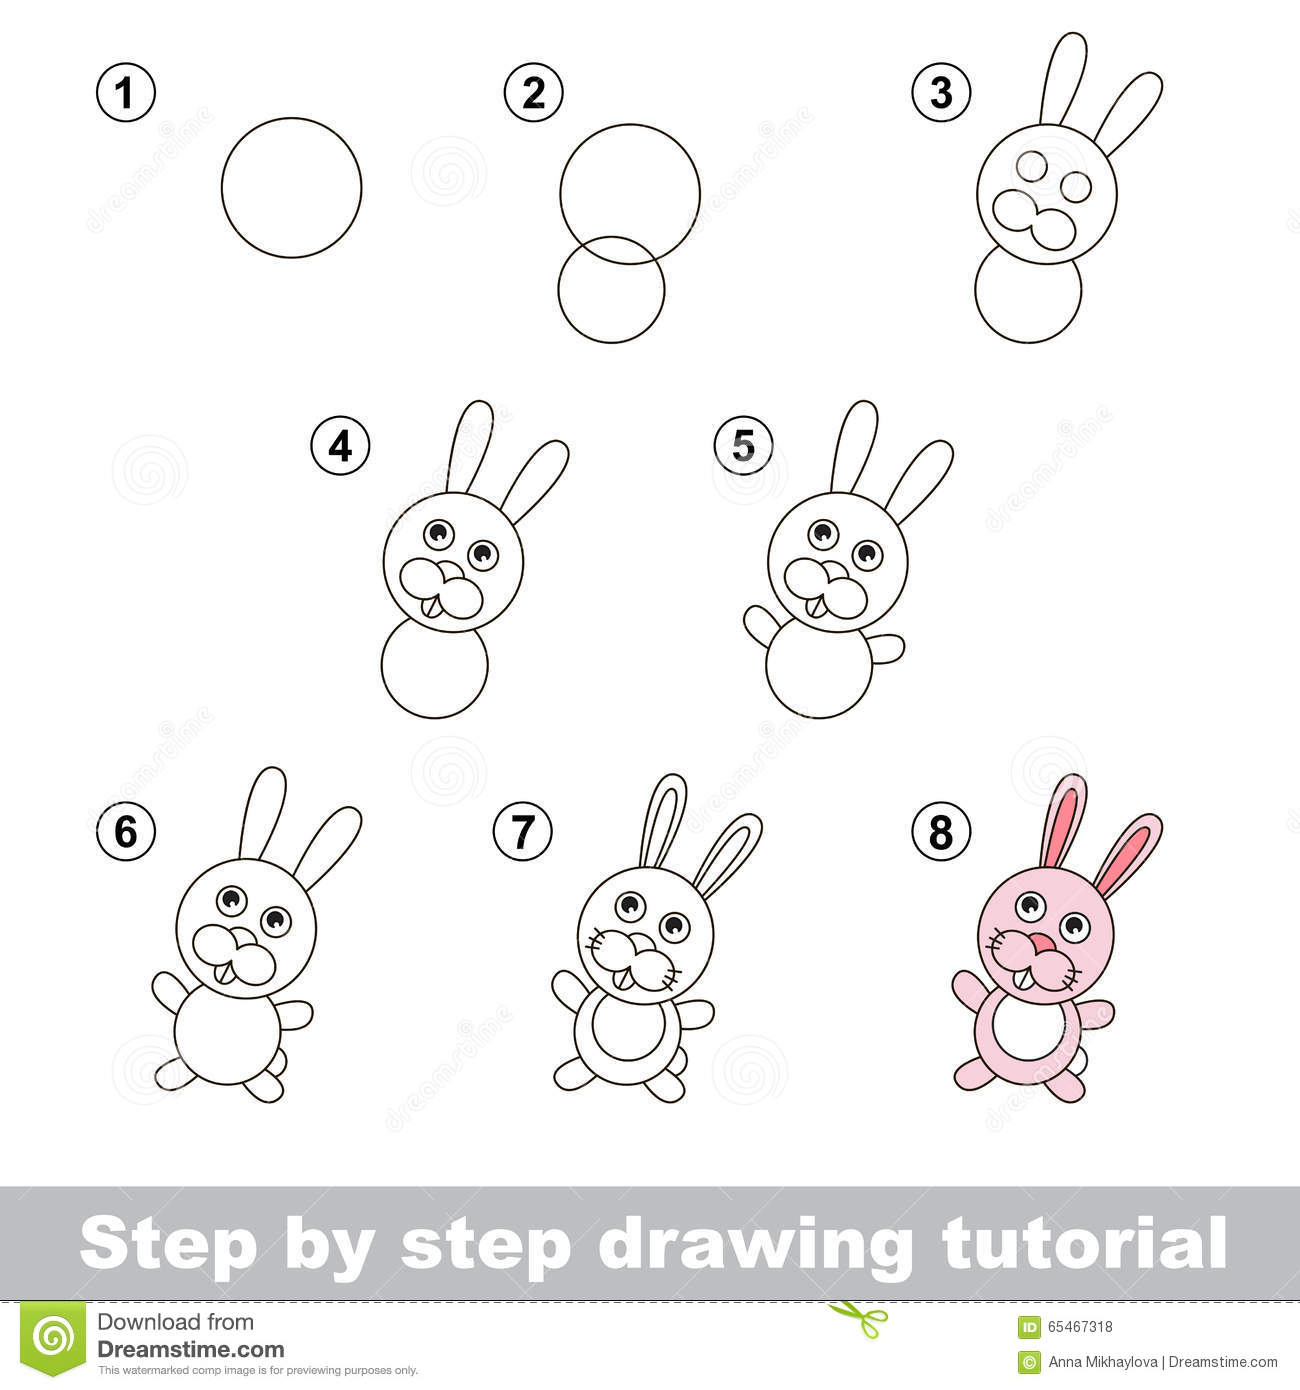 how to draw your own pokemon trainer step by step